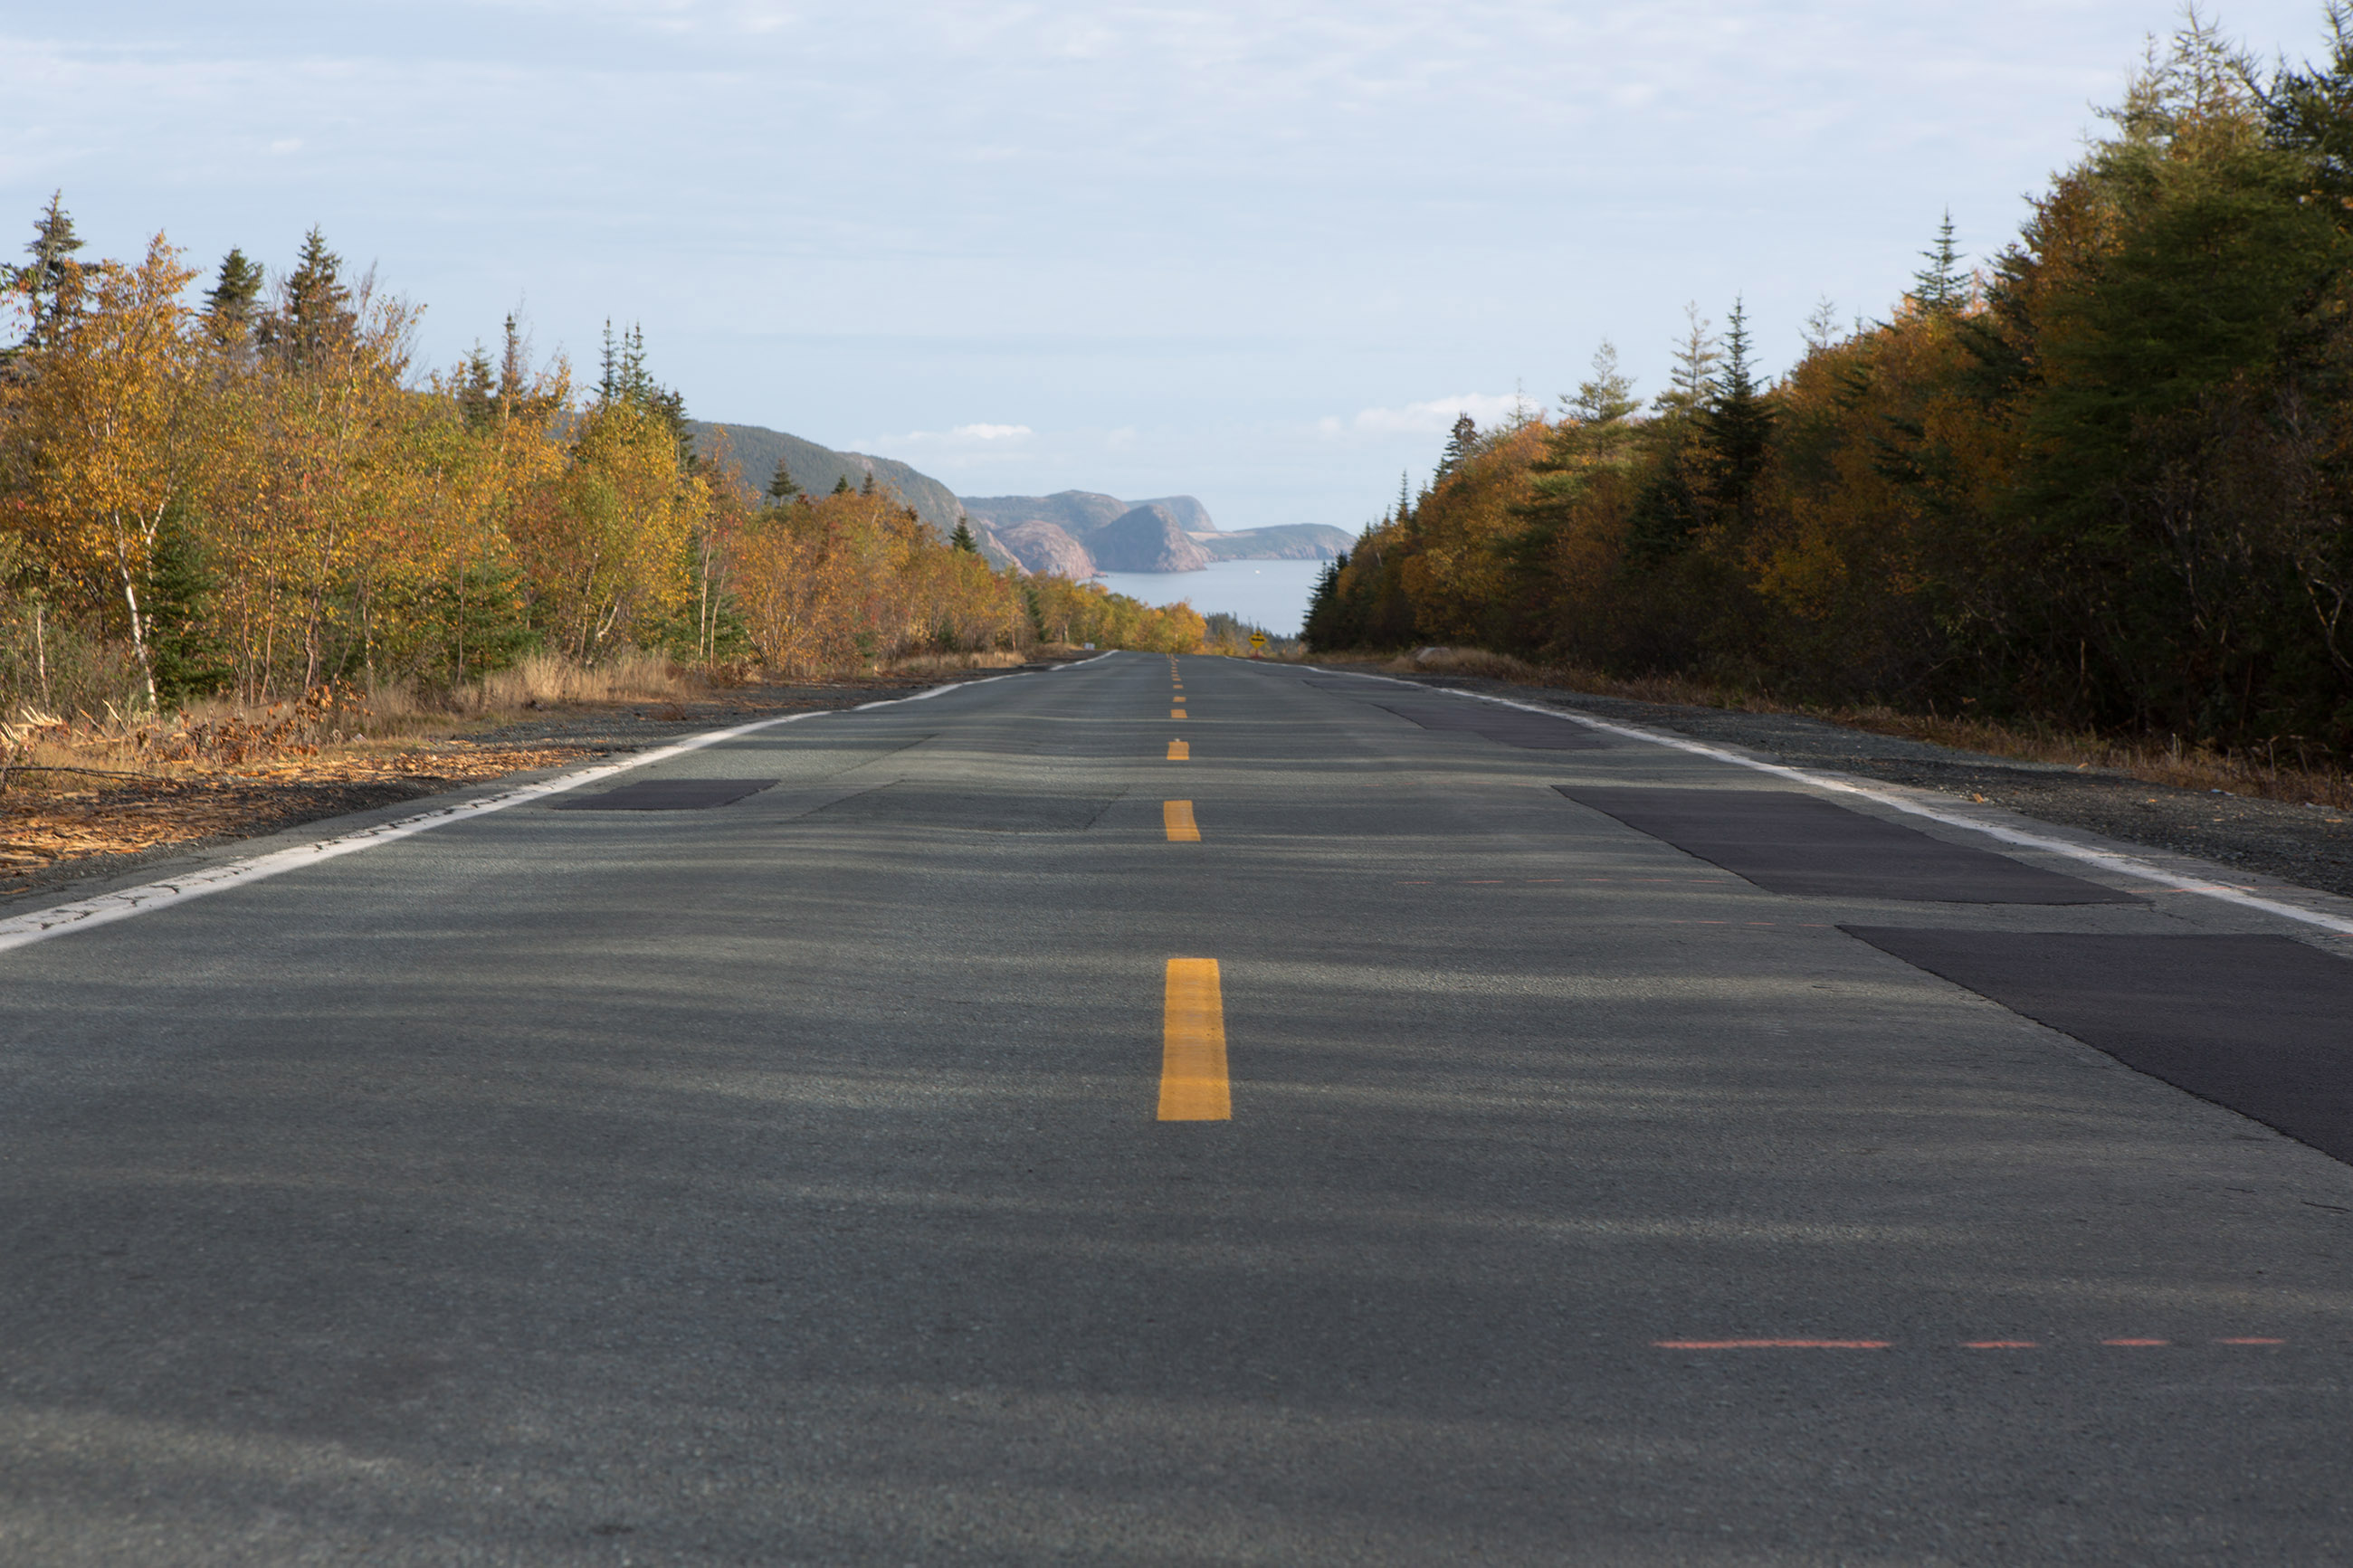 Road, Autumn, Paved, Winding, Water, HQ Photo